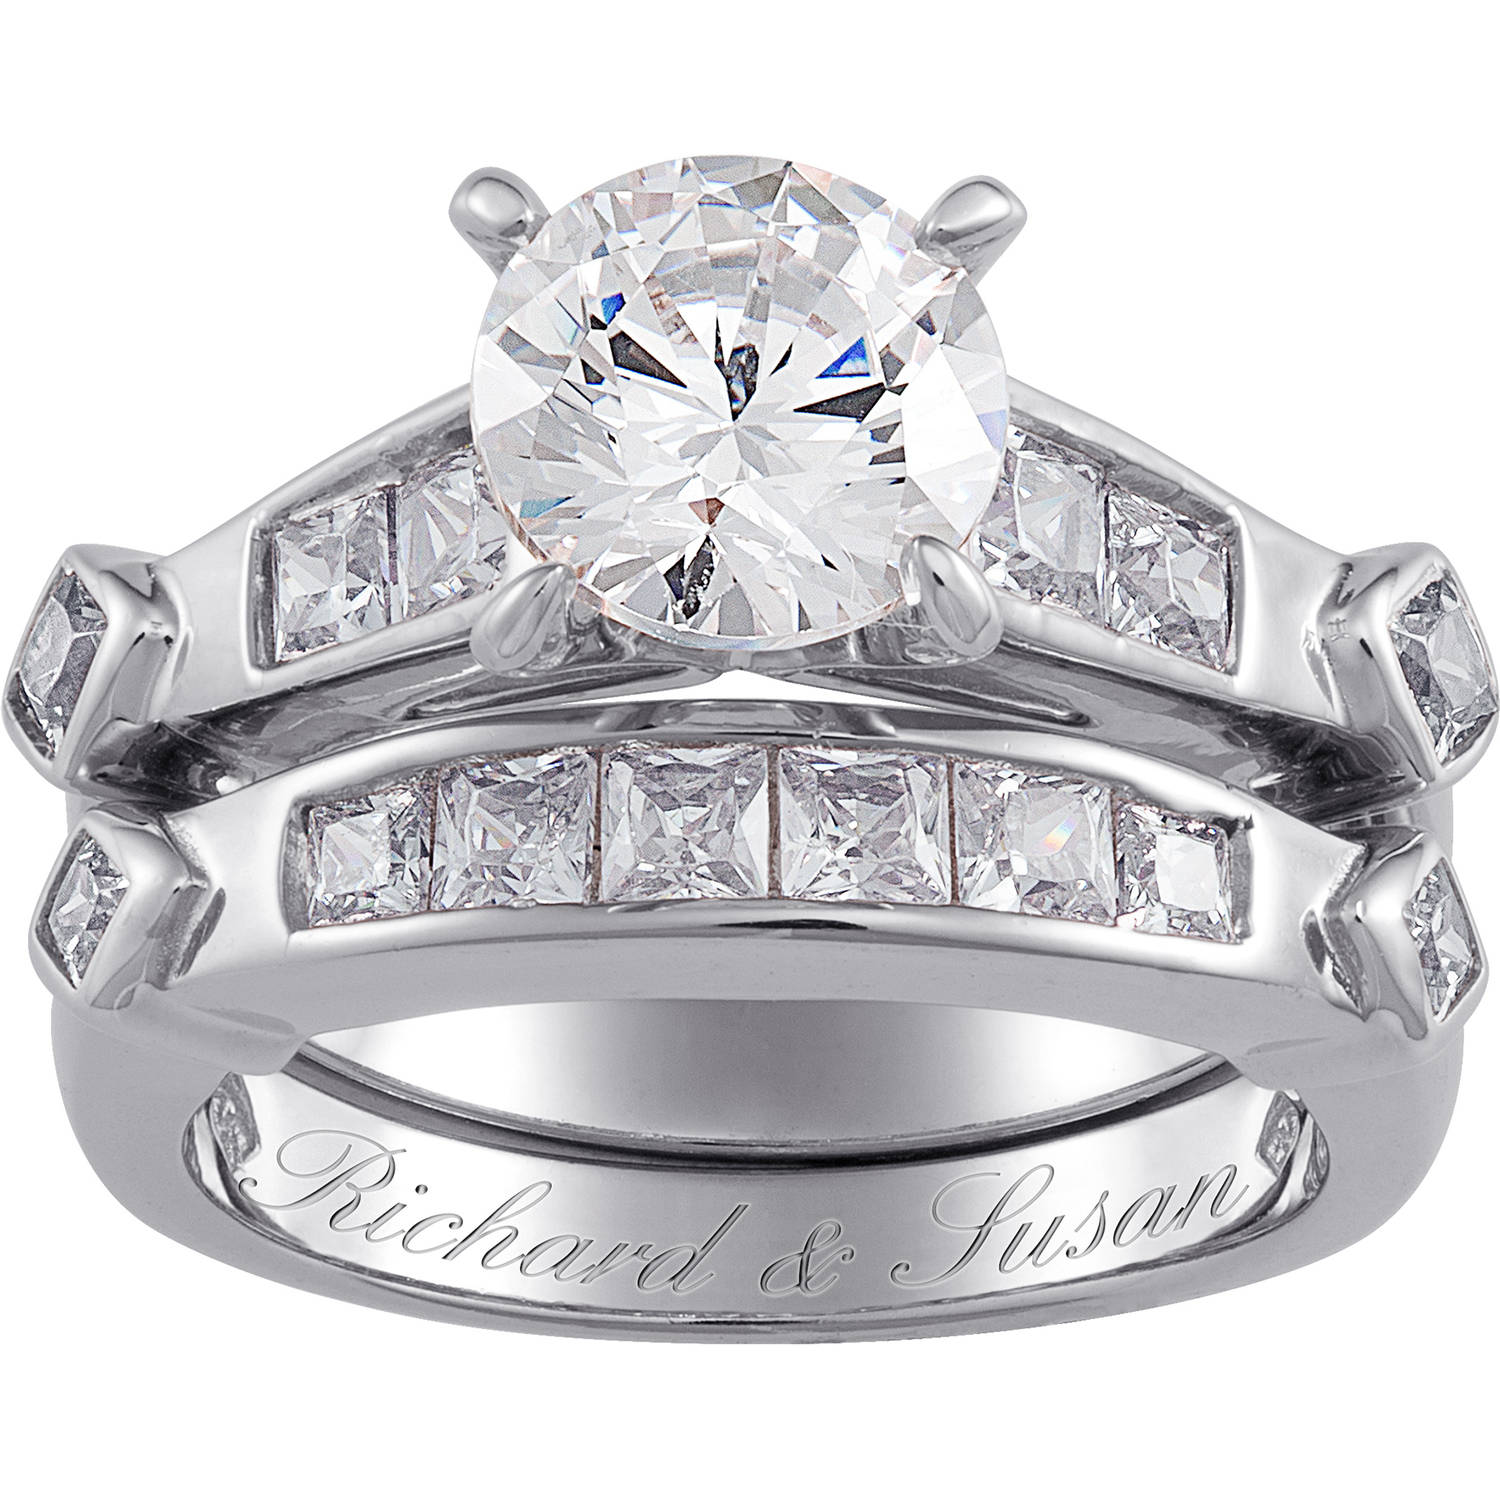 Sterling Silver 6.6 Carat T.G.W. Cubic Zirconia 2 piece Wedding Ring Set